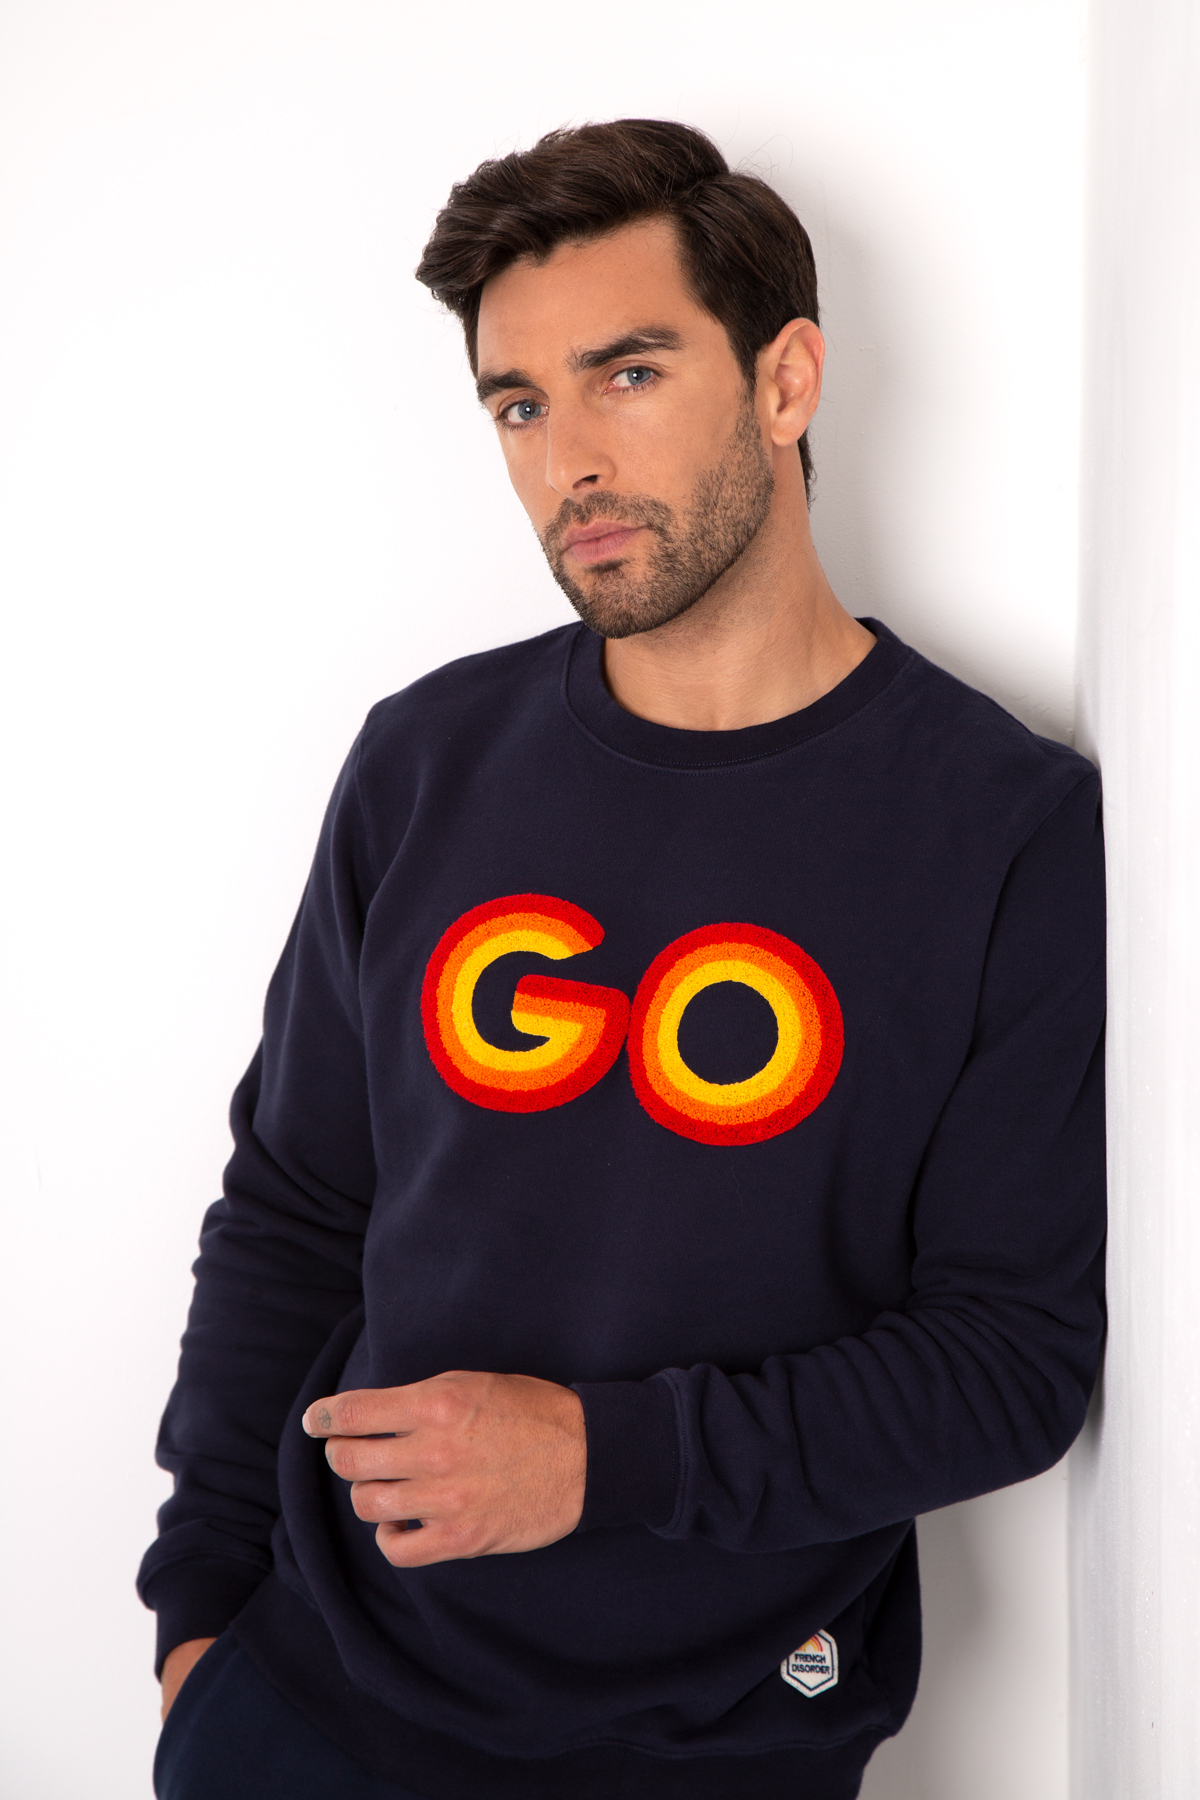 Photo de SWEATS Sweat GO broderie chez French Disorder